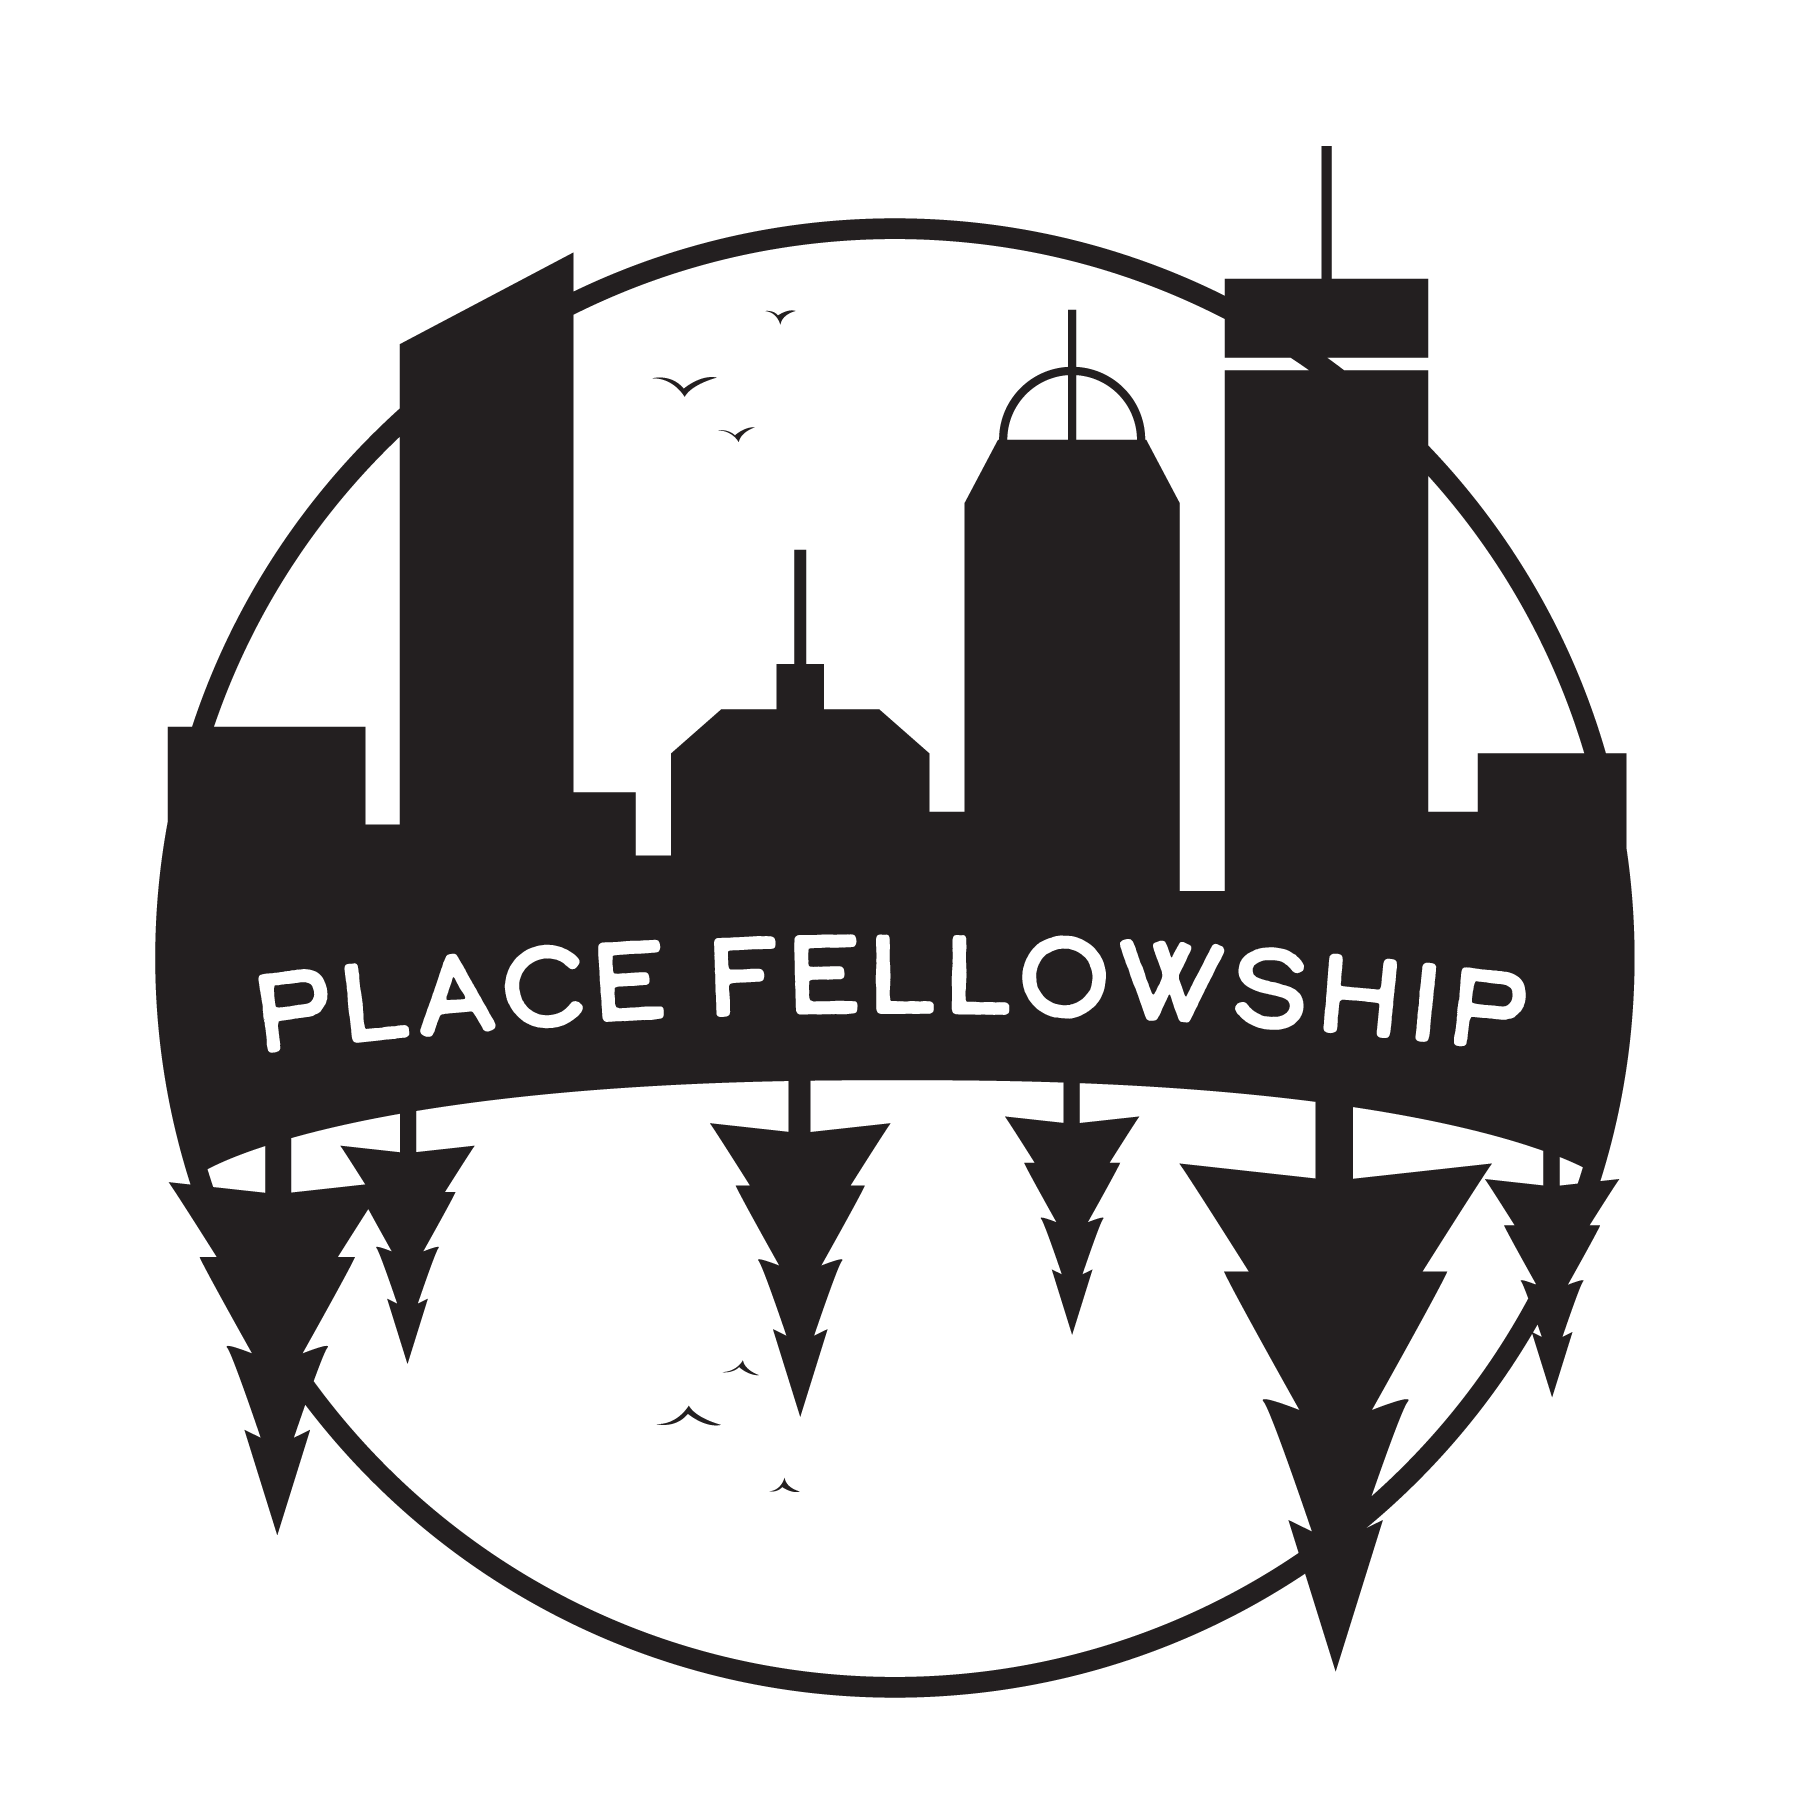 PLACE Fellowship logo features the silhouette of a forest in mirror reflection of a cityscape with the program title between them